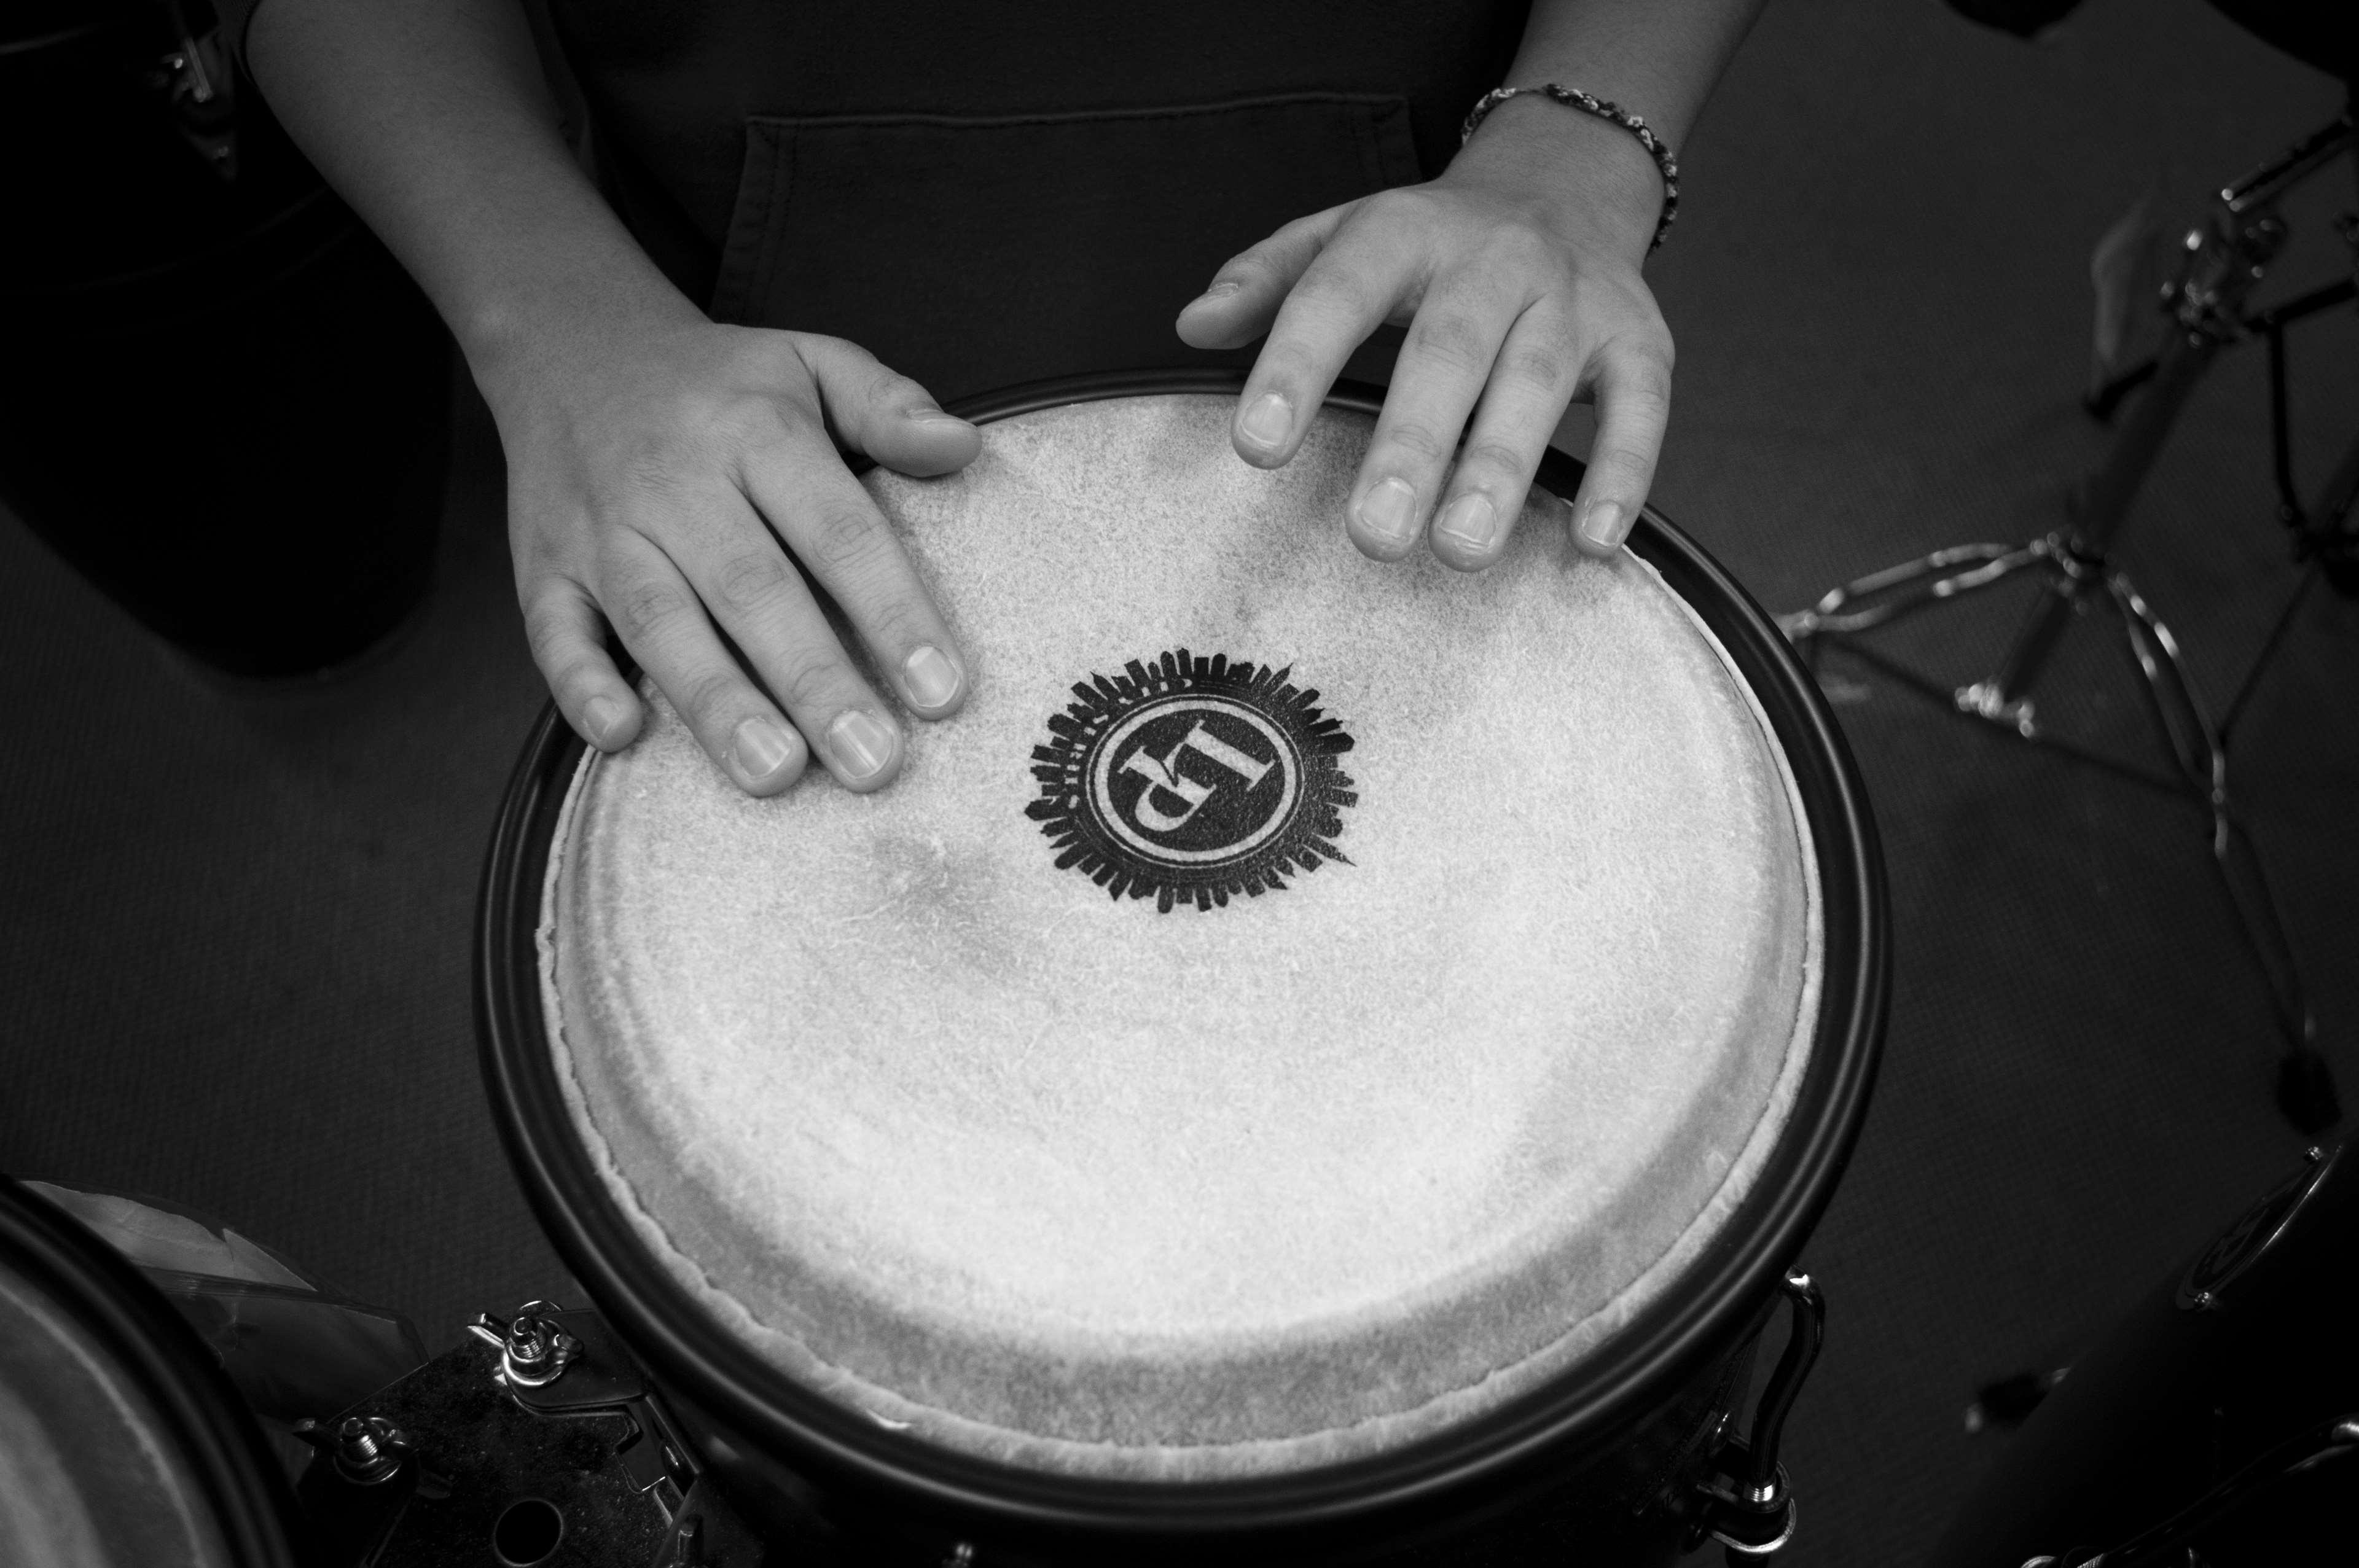 band, beat, black and white, bongo drum, drum, drummer, hands, loud